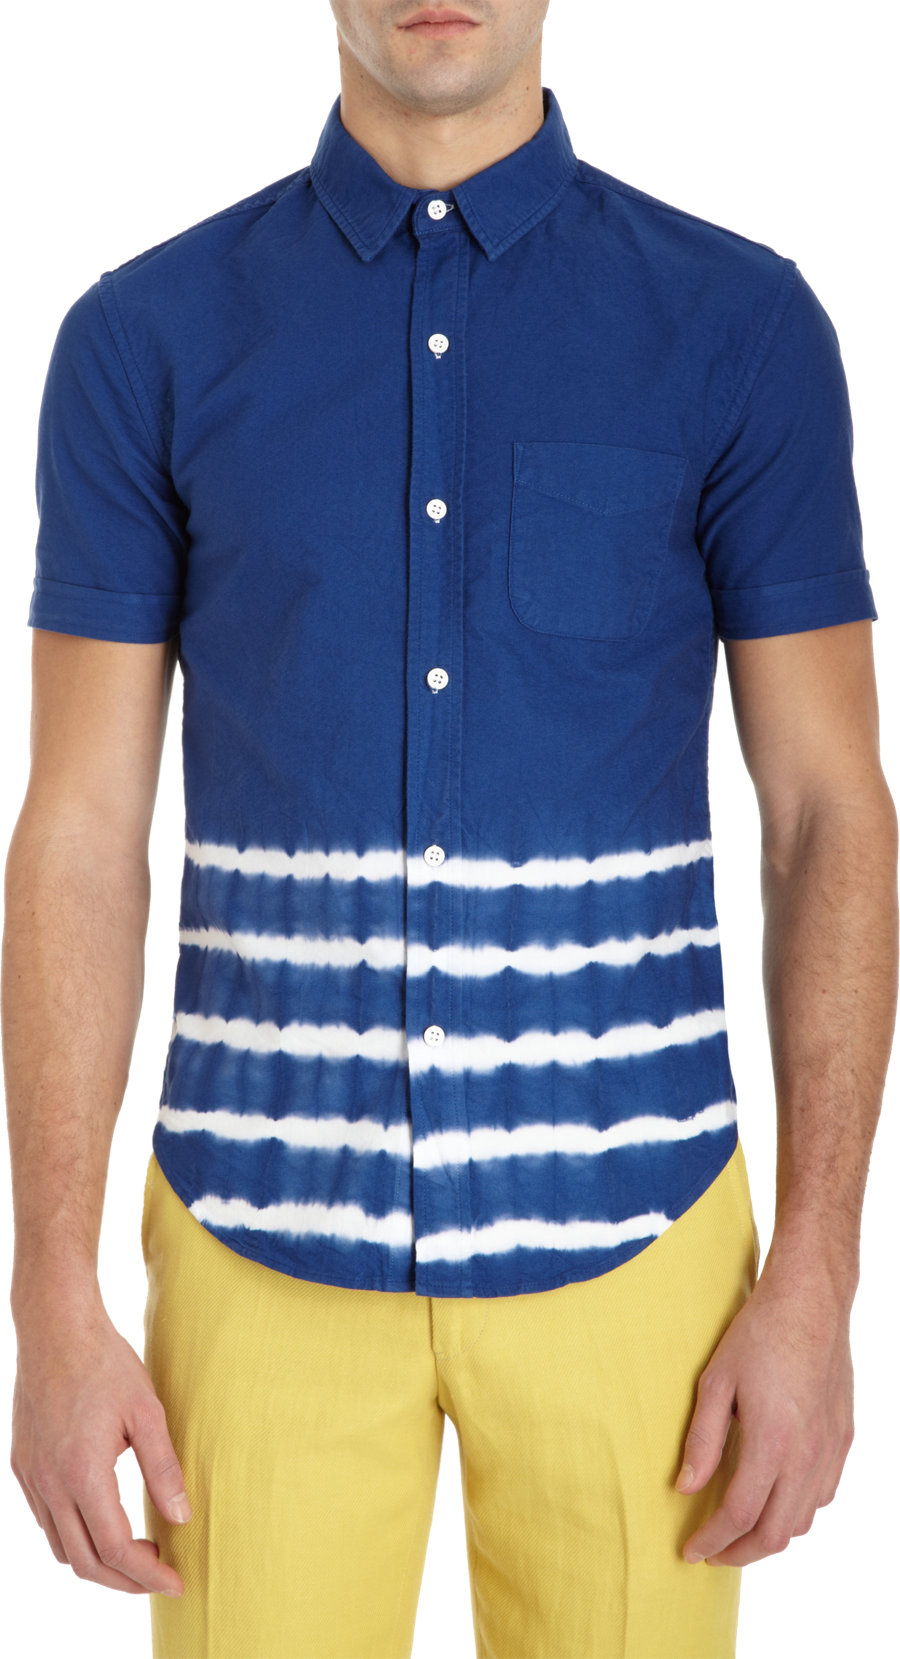 Band Of Outsiders Tie Dye Short Sleeve Shirt In Blue For